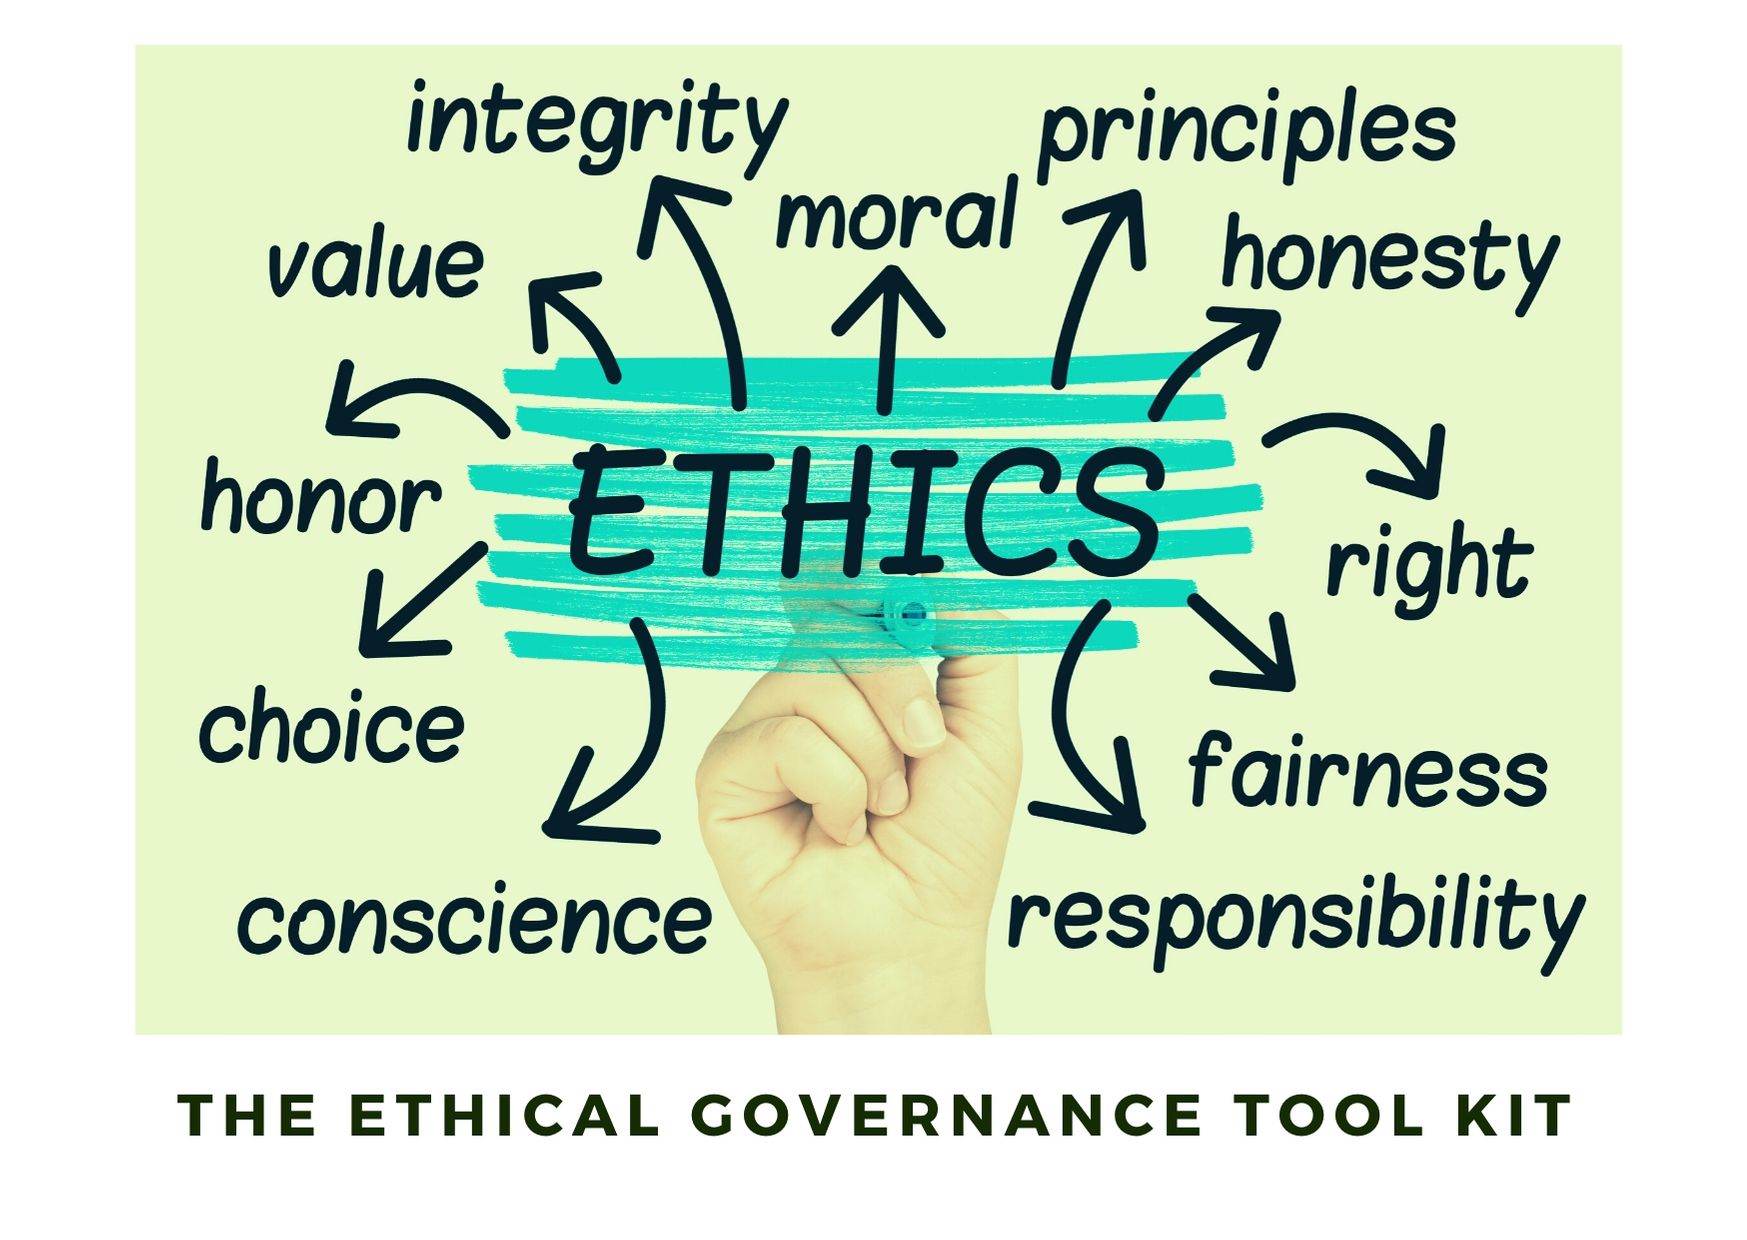 The Ethical Governance Tool Kit